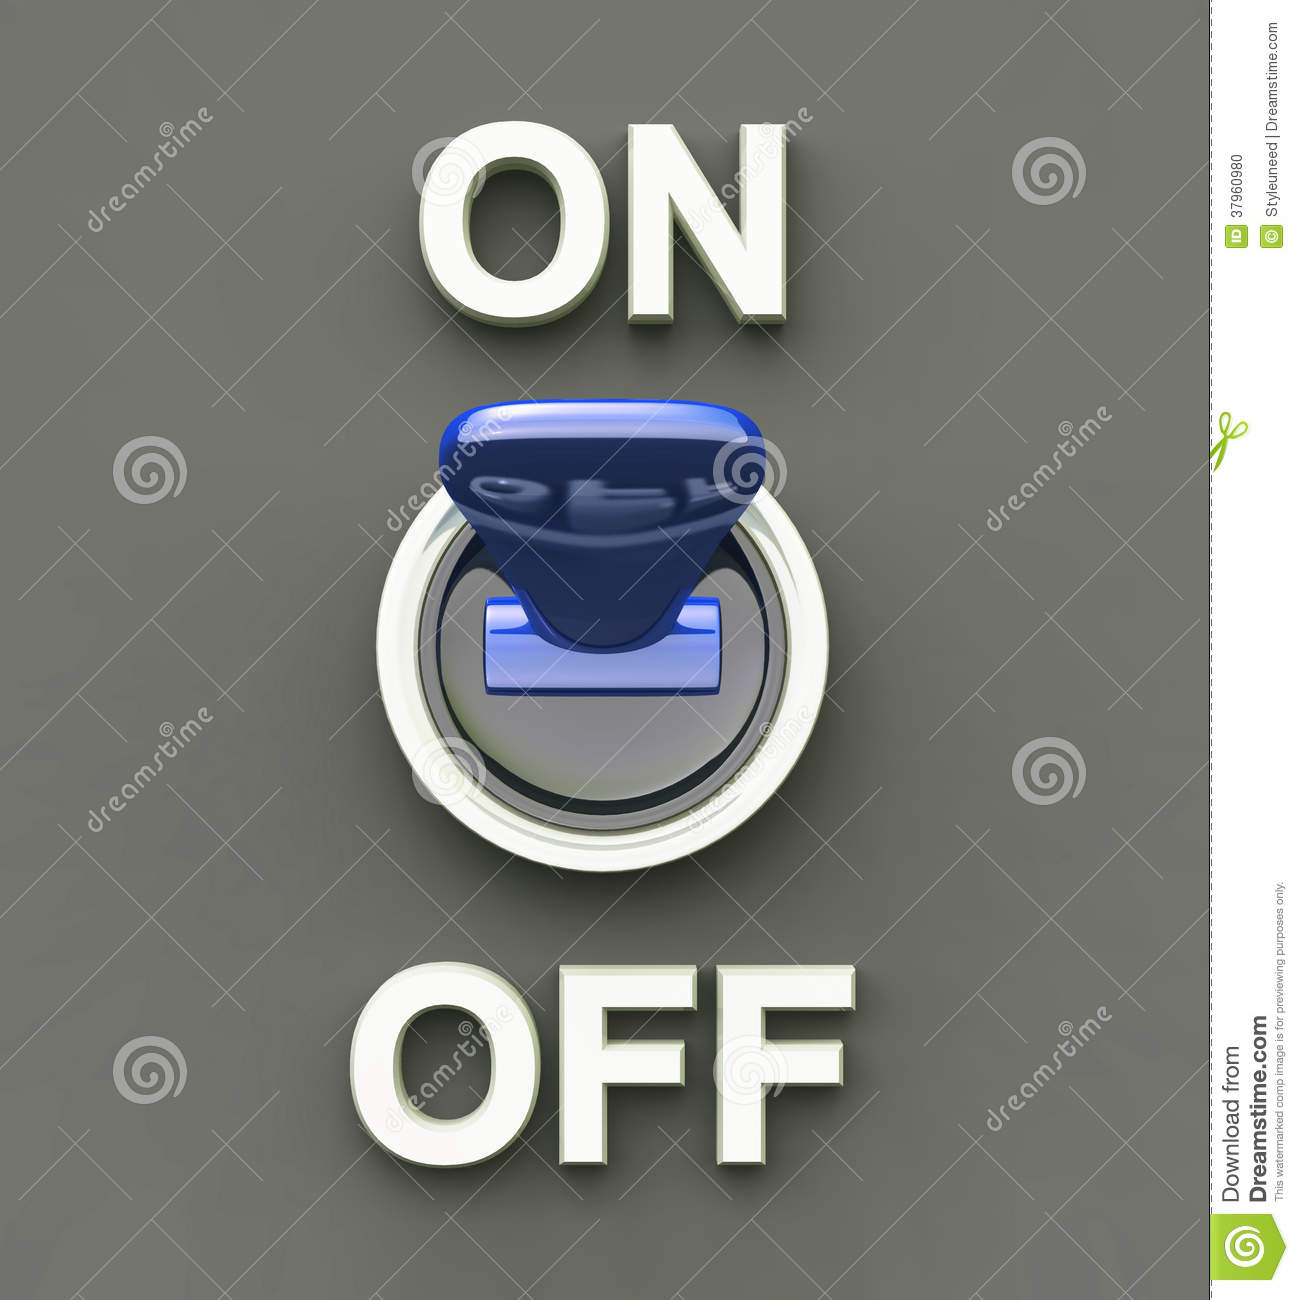 On Off switch graphic stock illustration. Illustration of blue ...